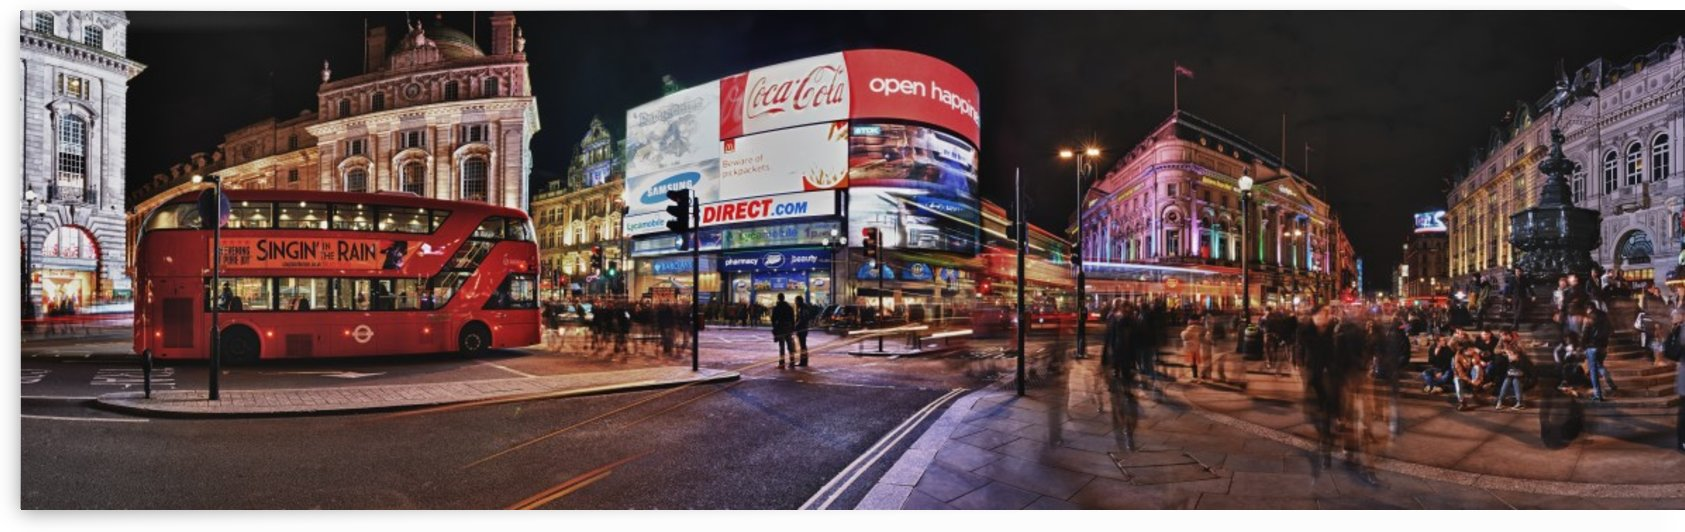 Piccadilly Circus by Adrian Brockwell